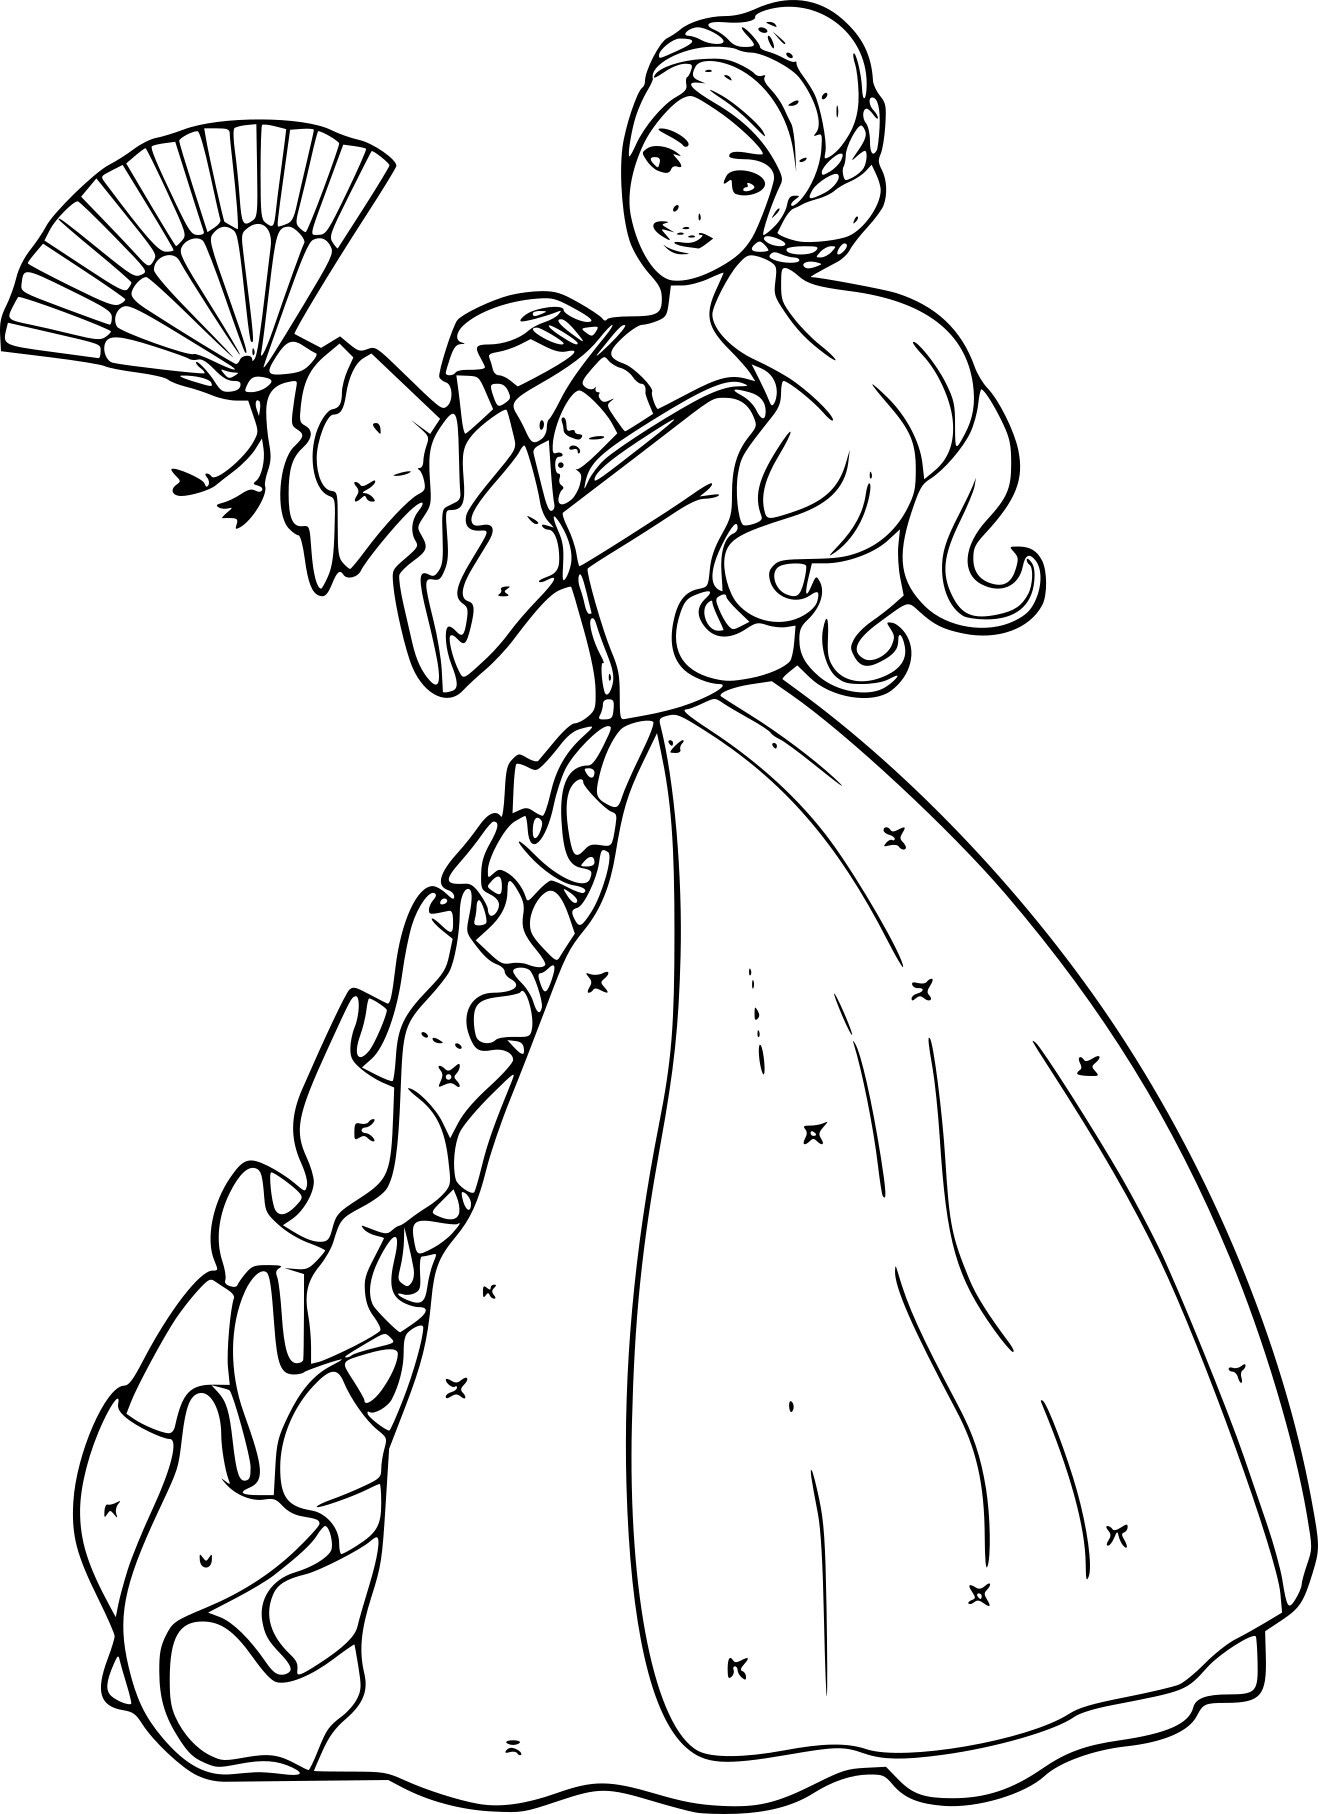 Coloriage Barbie Winx Superbe Disposition Coloriage Barbie Princesse